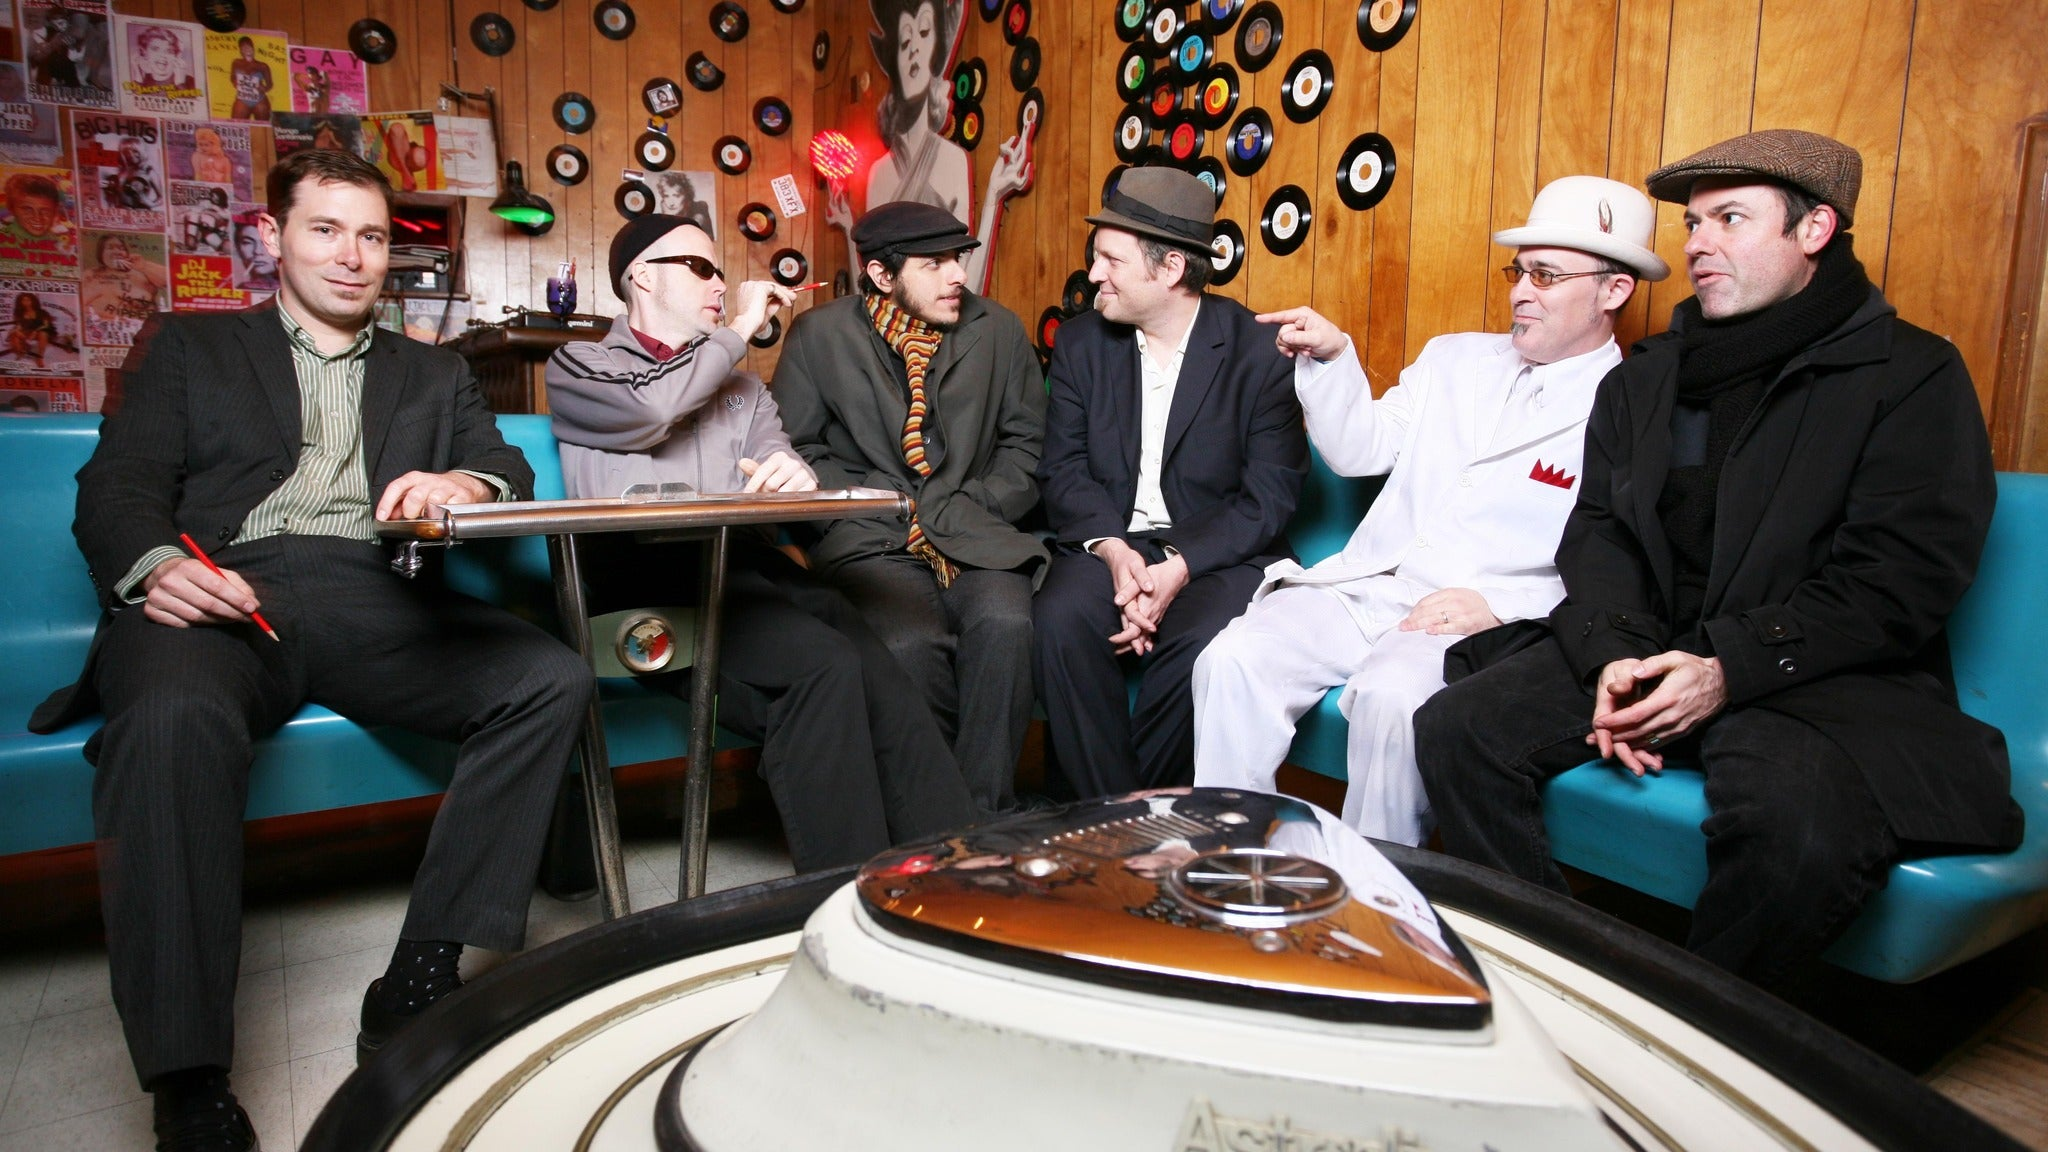 The Slackers, Pause for the Cause